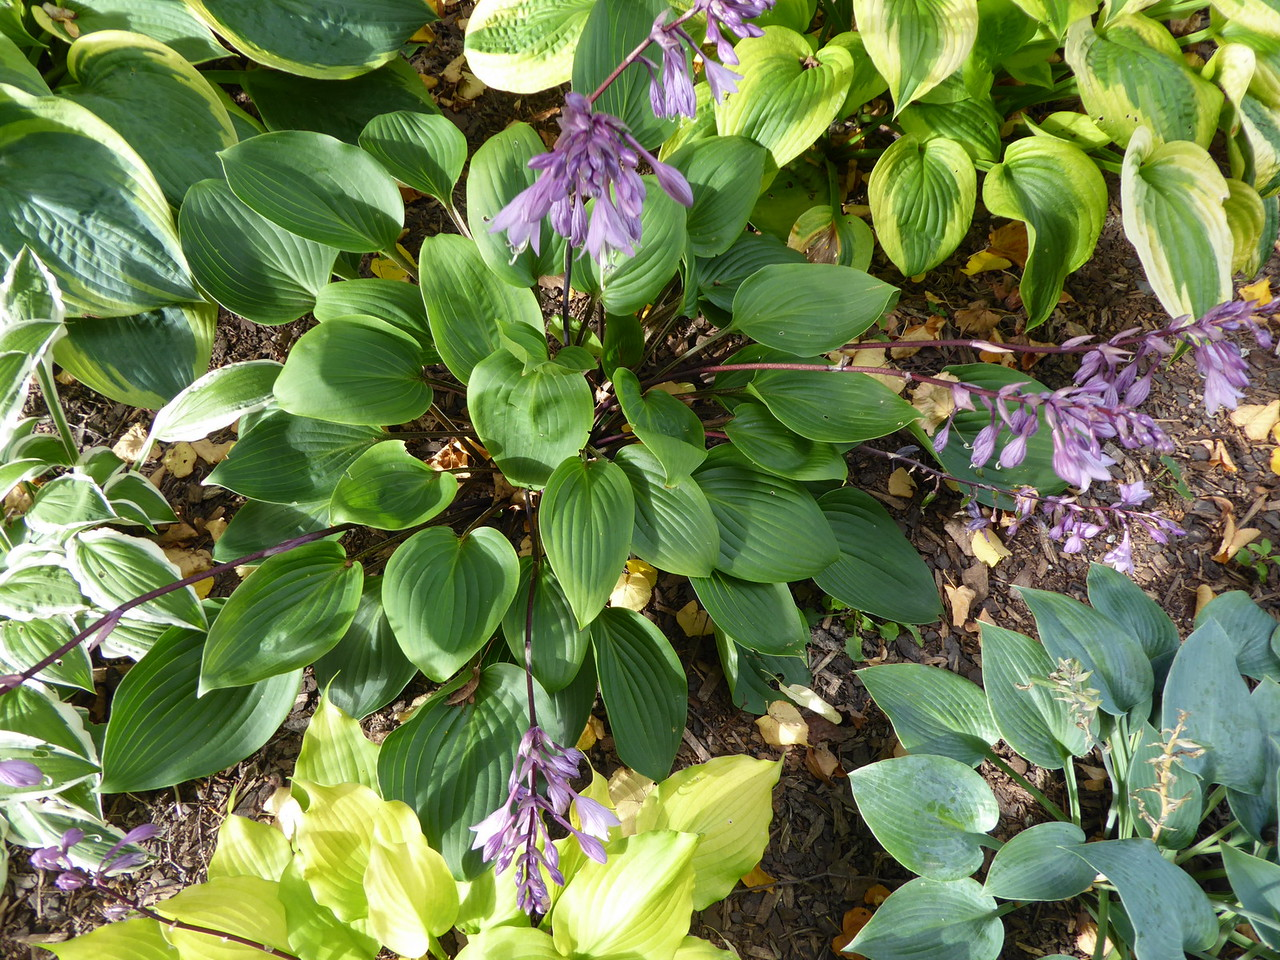 Hosta 'Purple Heart' - 2016 - Sept. 14